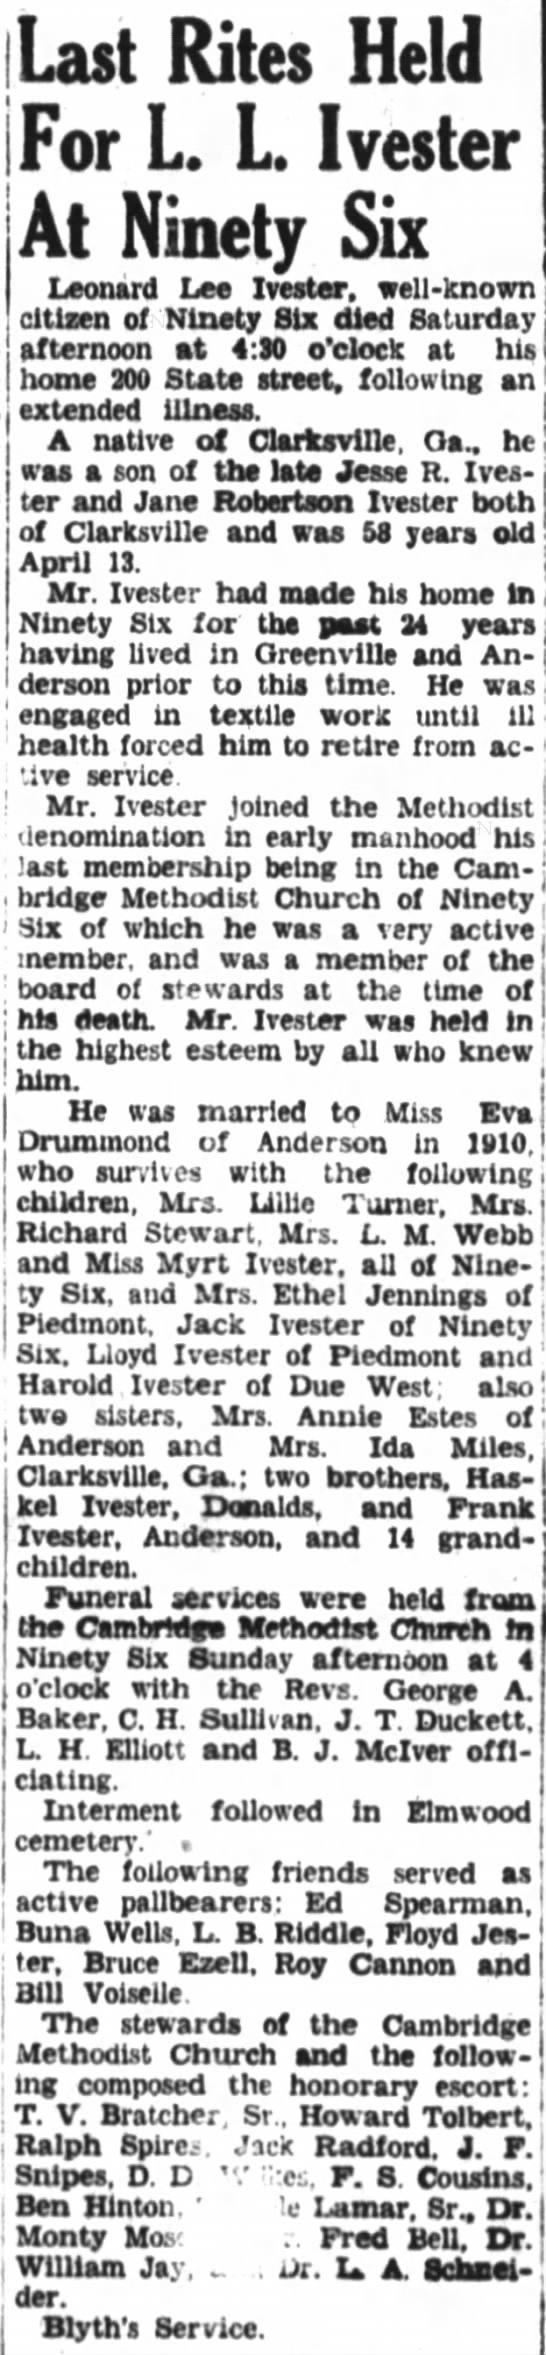 - Last Rites Held For L. L. Ivester At Ninety Six...